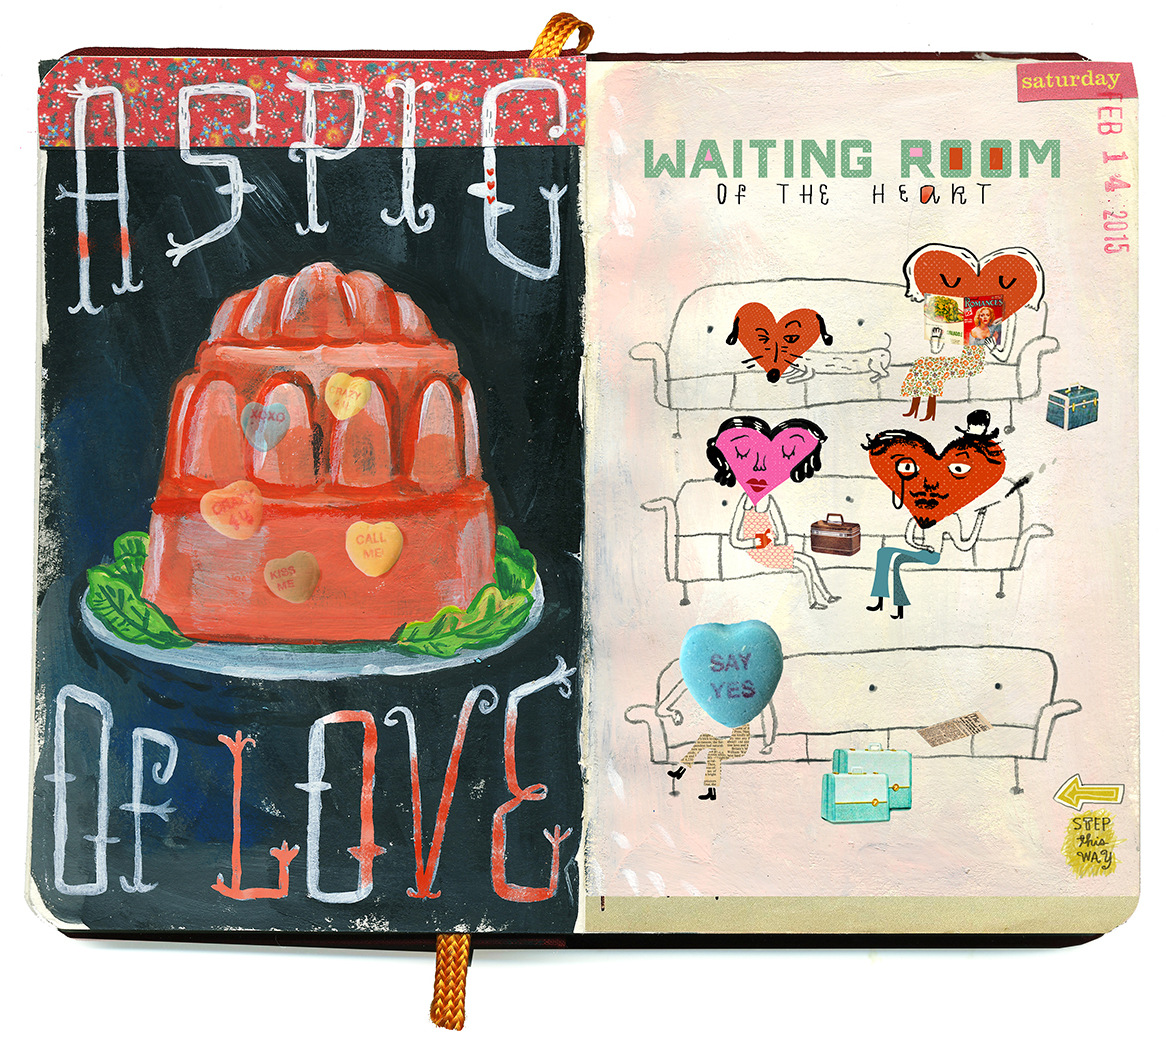 Aspic of love/Waiting room of the heart sketchbook. Happy Valentine's Day!